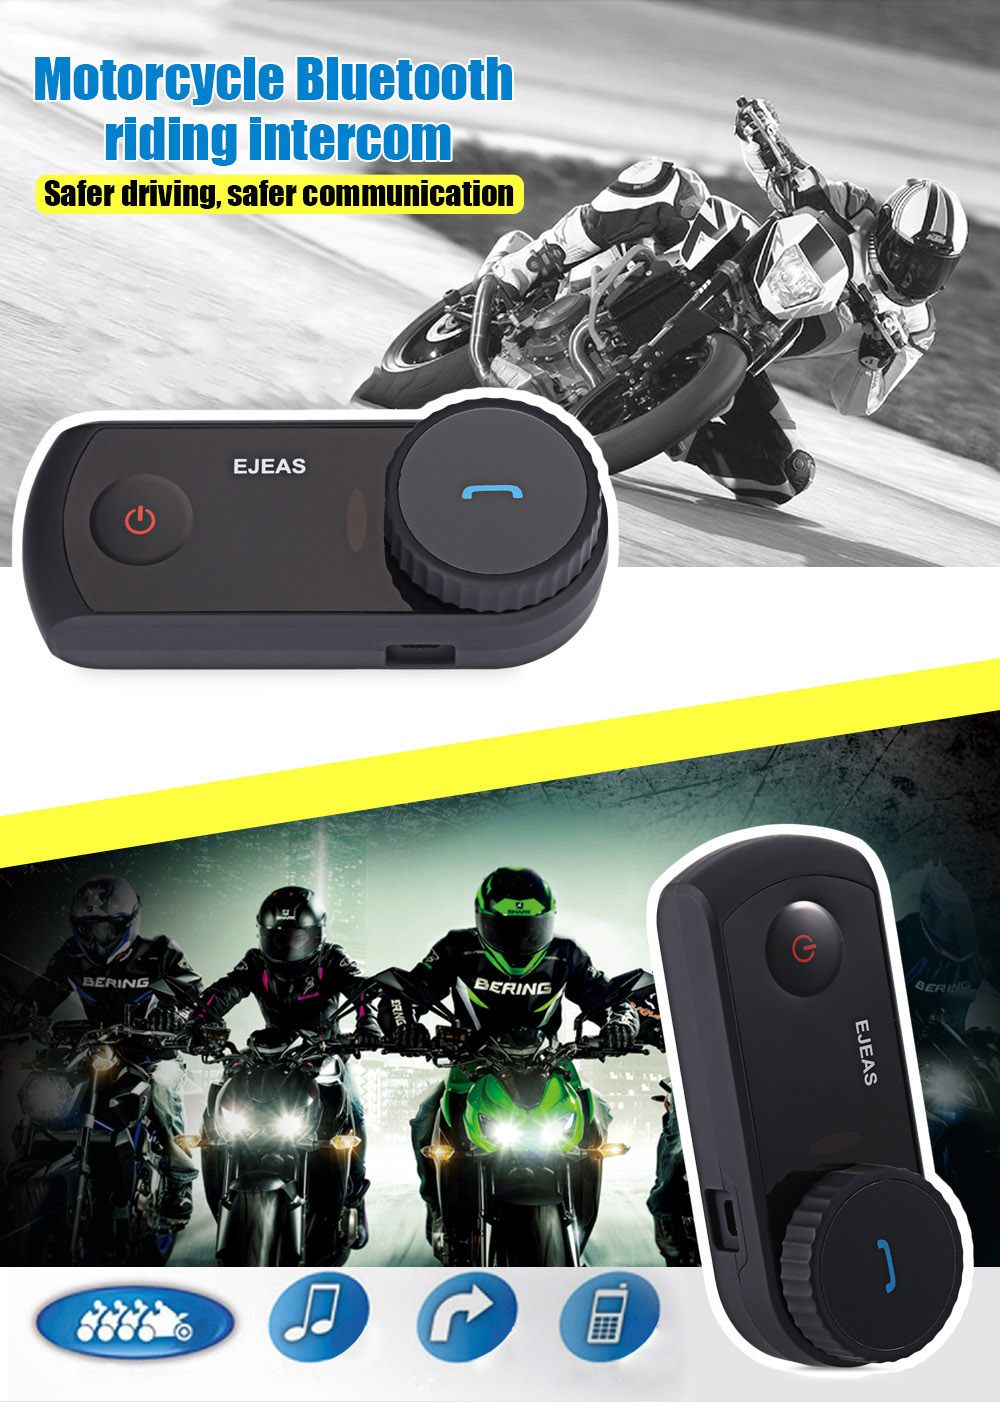 EJEAS - E2 Motorcycle Bluetooth Riding Intercom Two People Full duplex talking Waterproof Inter-phone